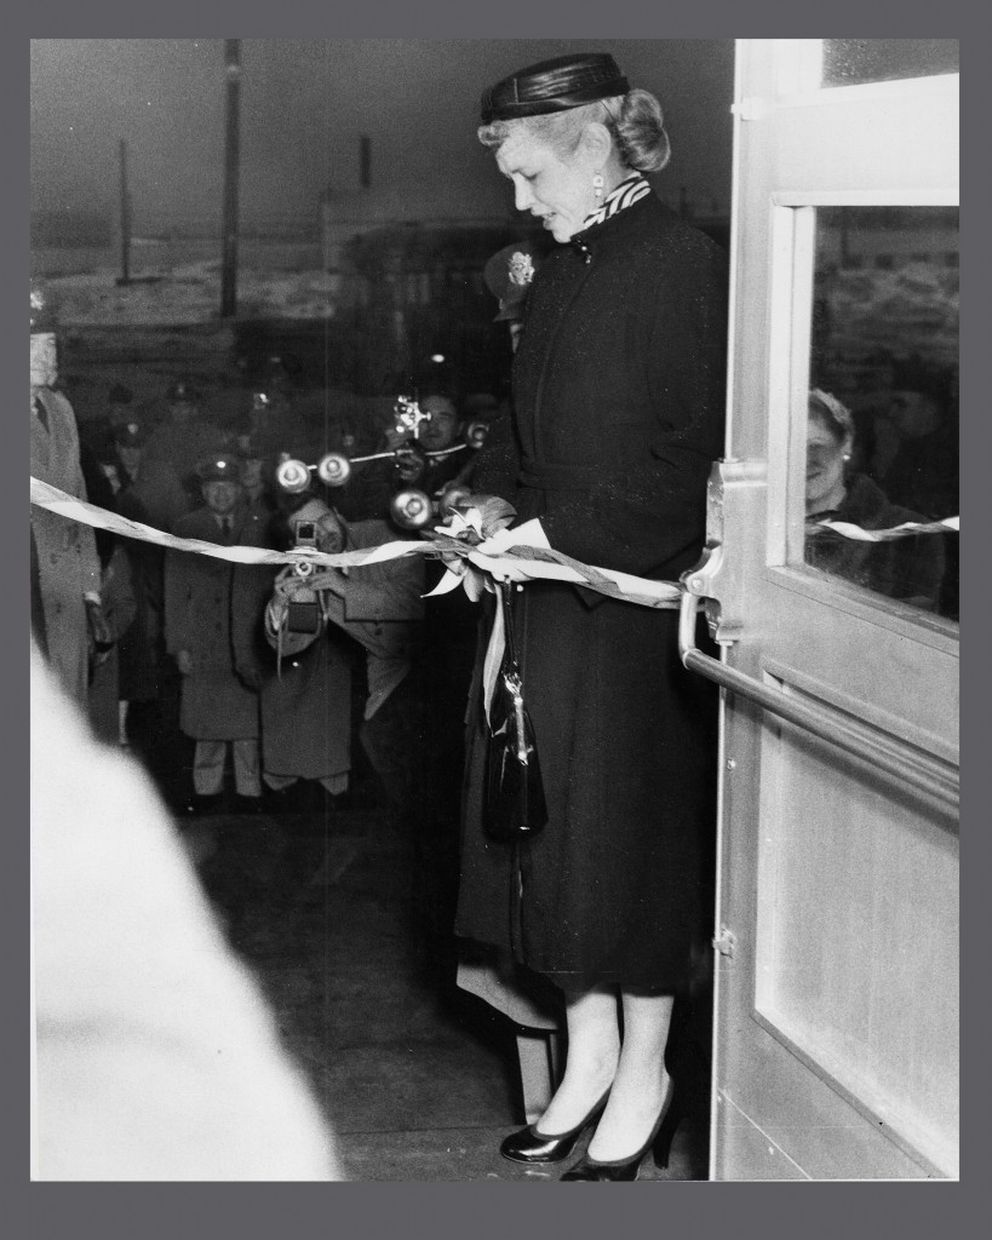 Willie Hodge, widow of Col. Hodge, cuts the ribbon at the opening of the Hodge Building in Whittier, now Begich Towers, in November, 1956. (Lundin Family Collection / PWS Museum)